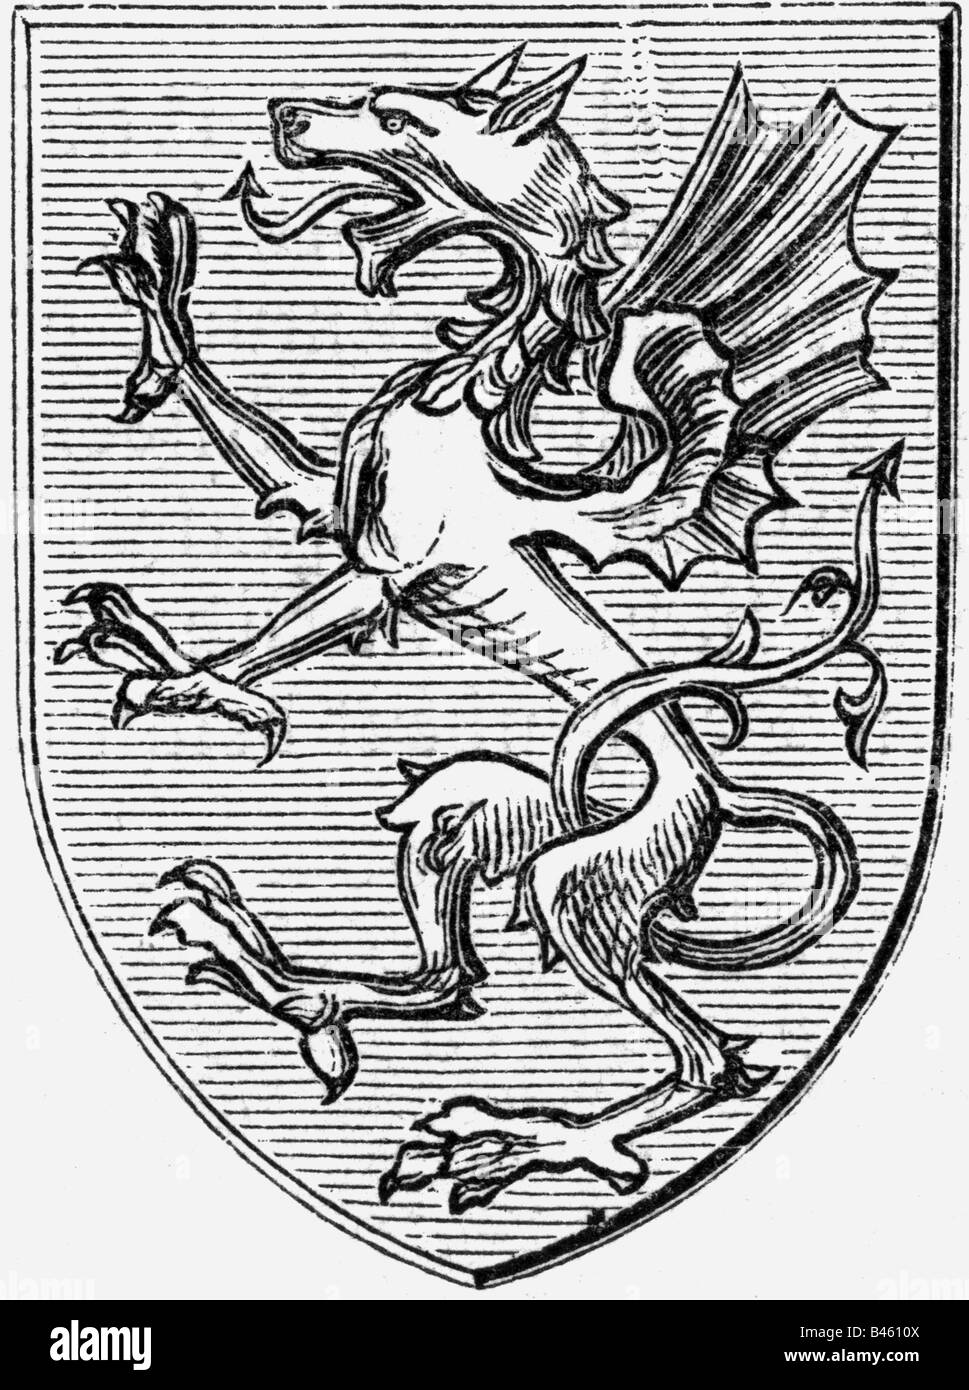 heraldy, coat of arms, charges, medival dragon, wood engraving, 19th century, charge, symbol, dragon, dragons, mythical - Stock Image